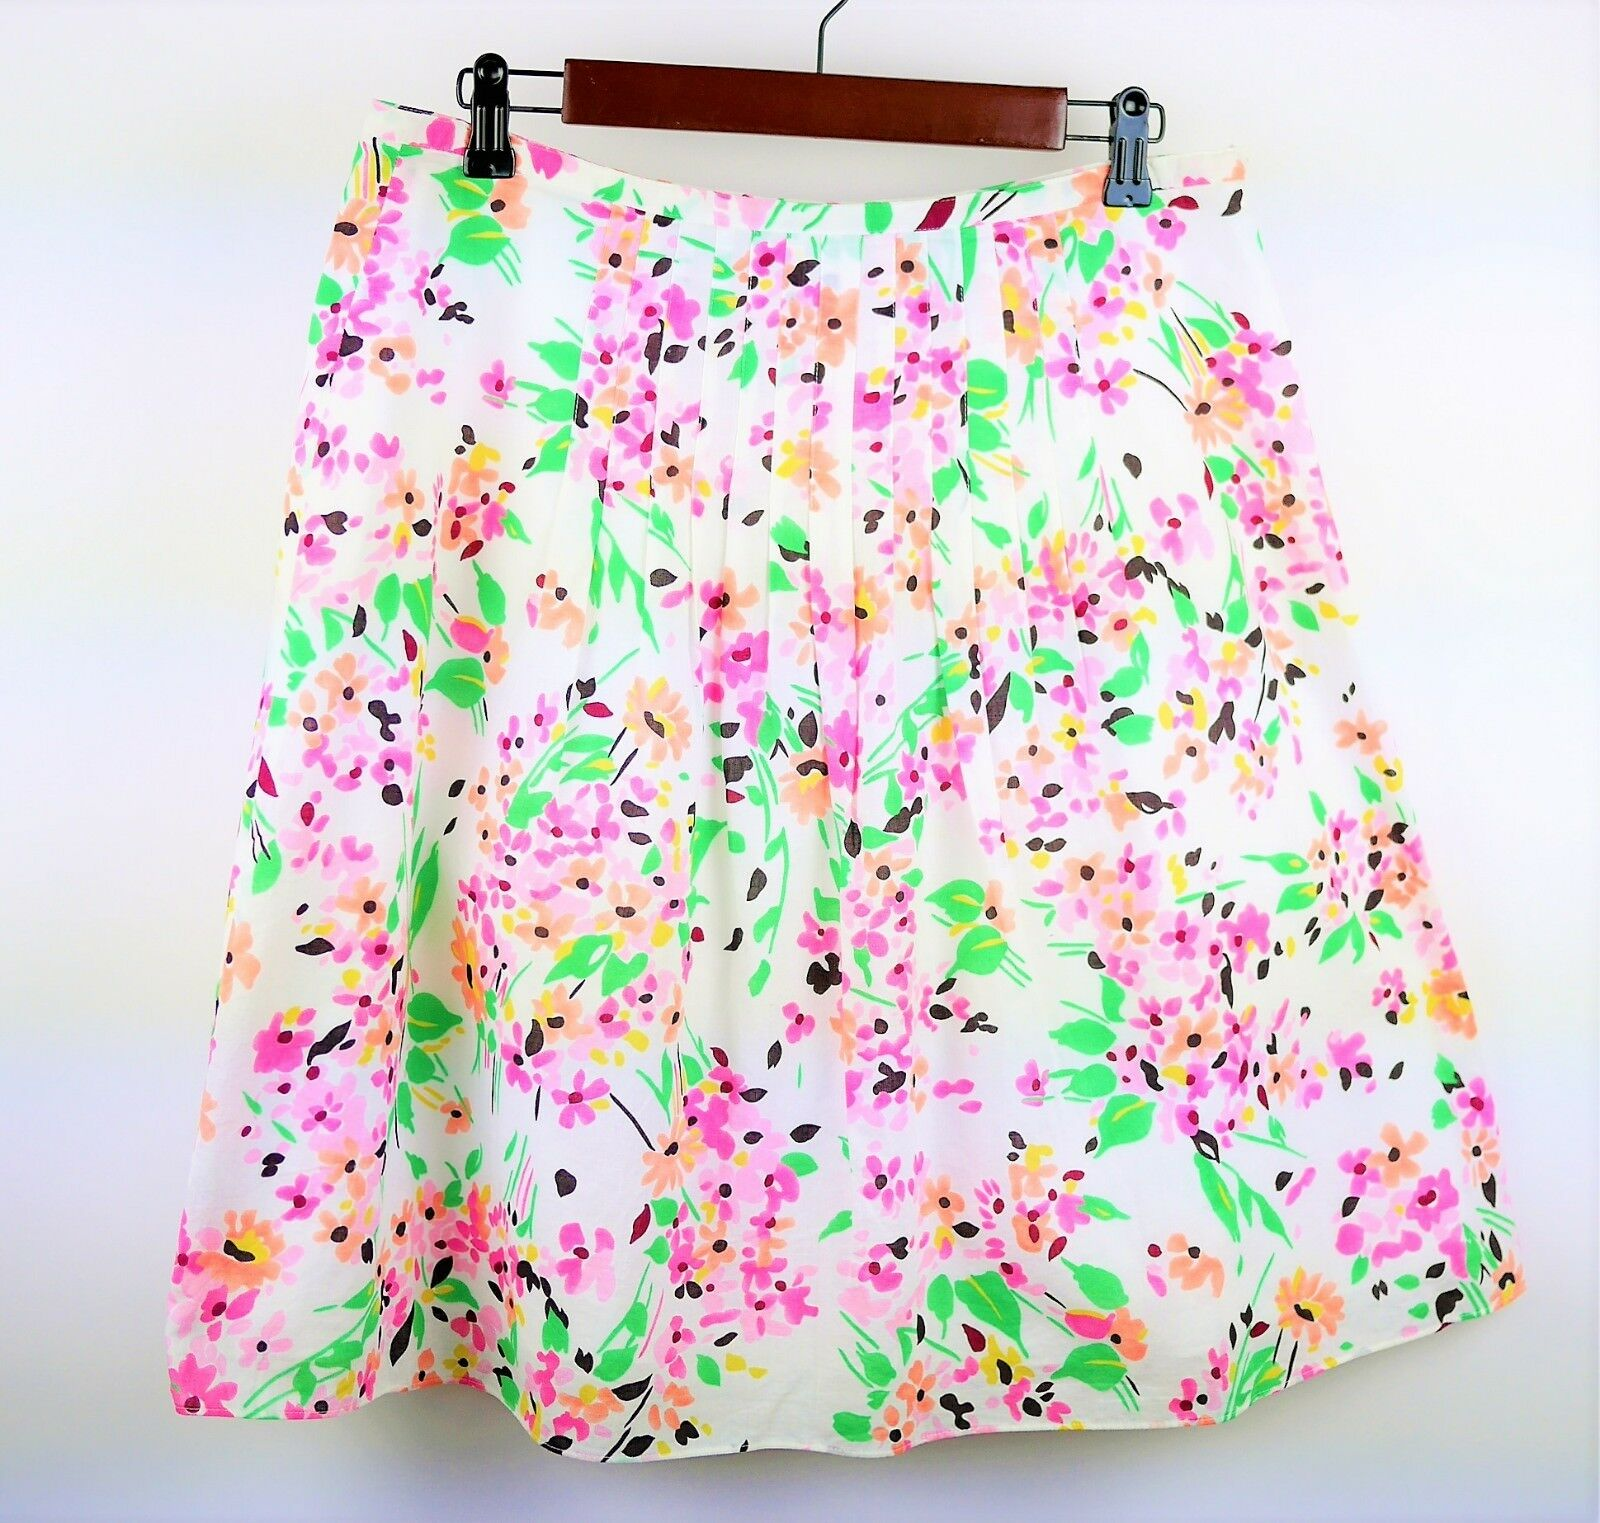 TALBOTS Size 12 P - WHITE PINK & GREEN FLORAL PLEATED FLARE SKIRT - Knee Length